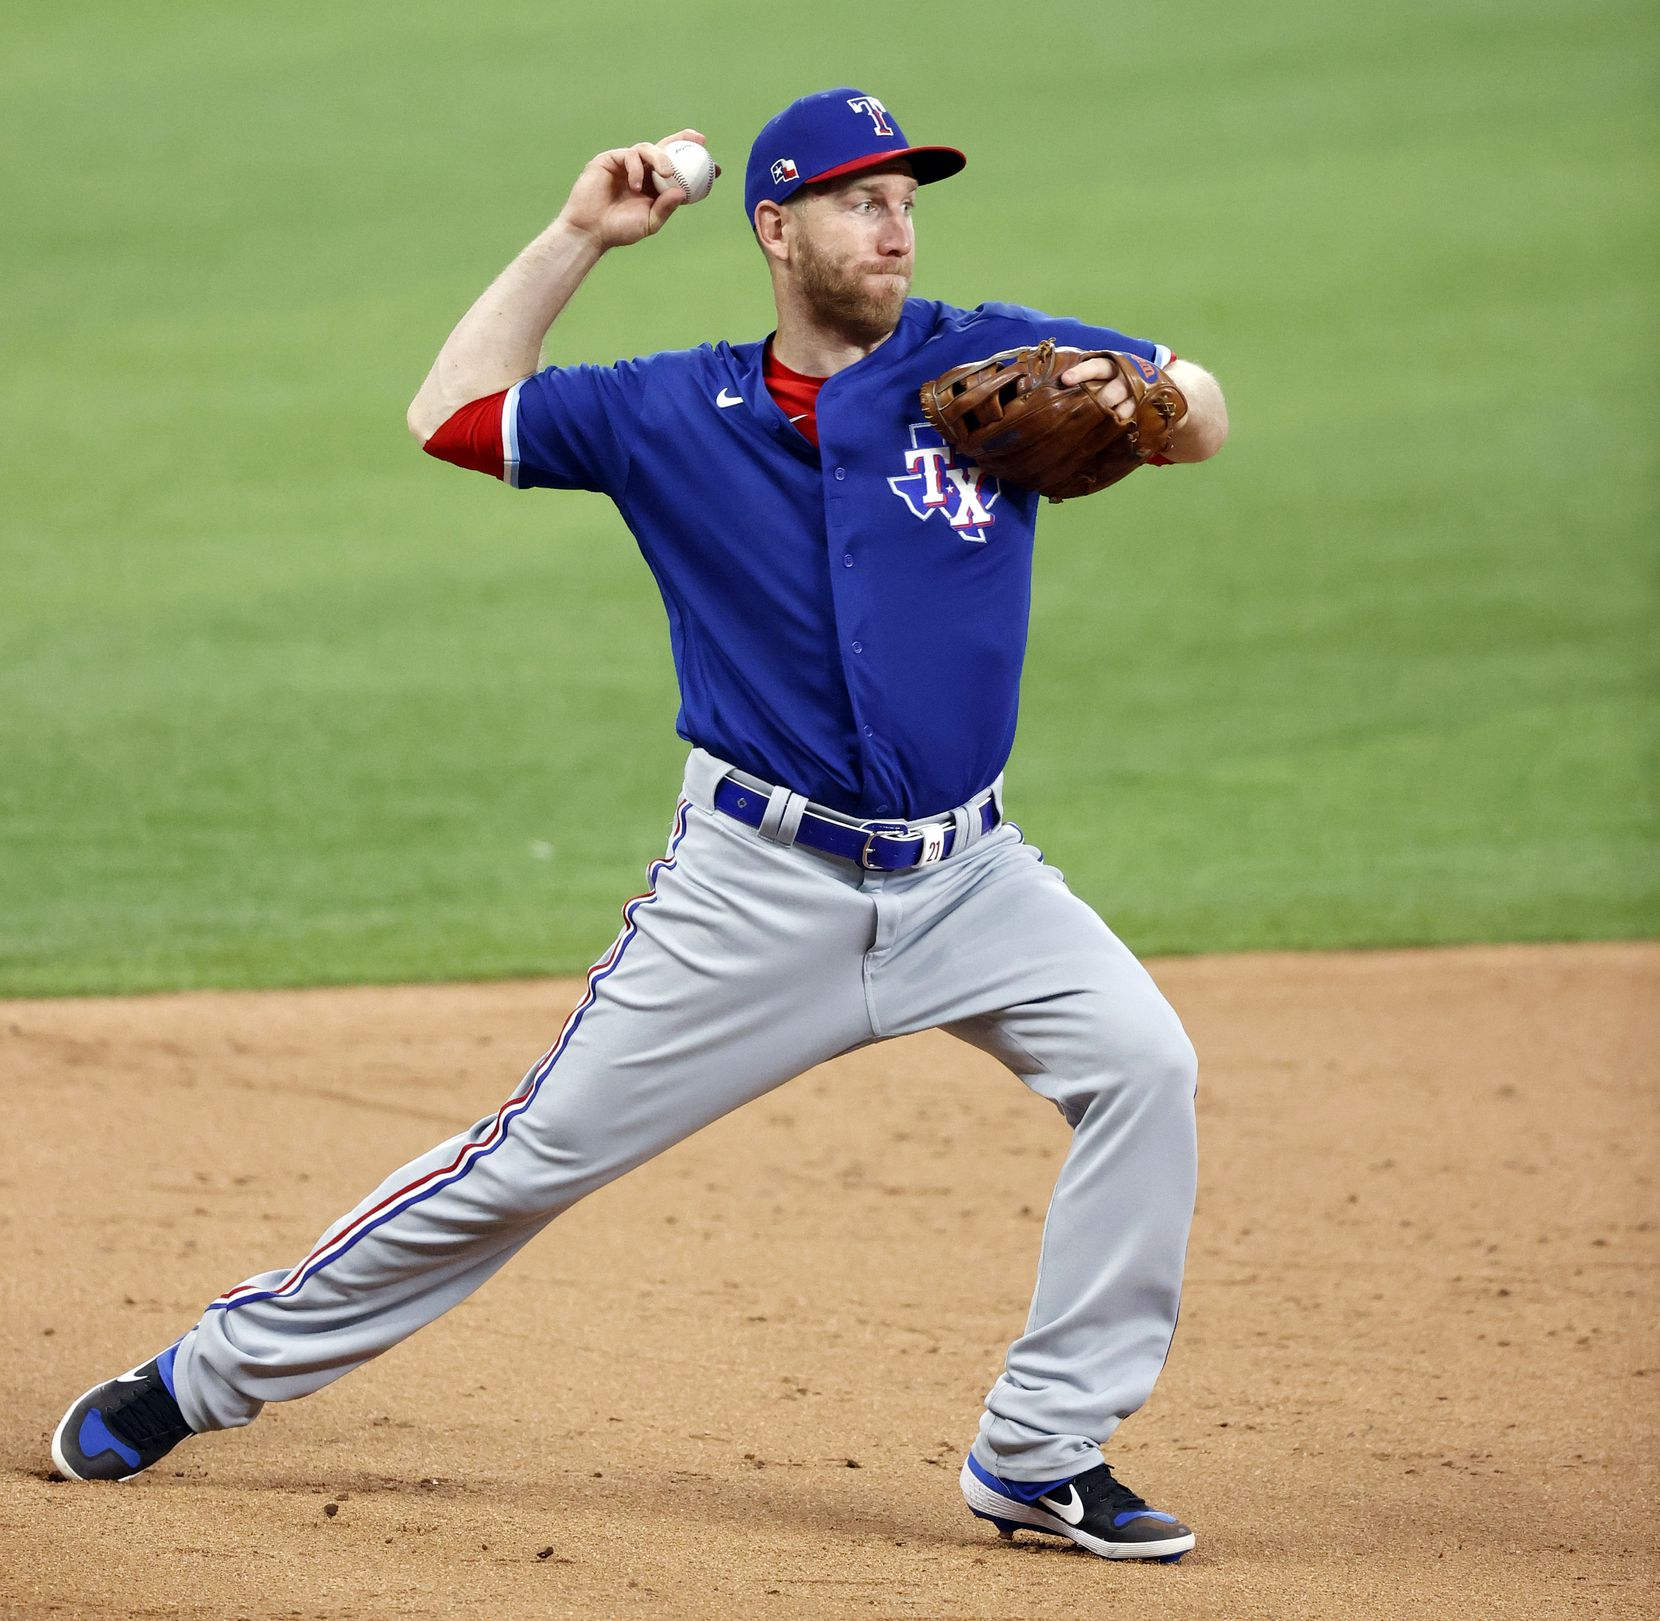 Texas Rangers third baseman Todd Frazier fields an infield ball and makes the play at first during an intrasquad game at Summer Camp inside Globe Life Field in Arlington, Texas, Friday, July 10, 2020. (Tom Fox/The Dallas Morning News)